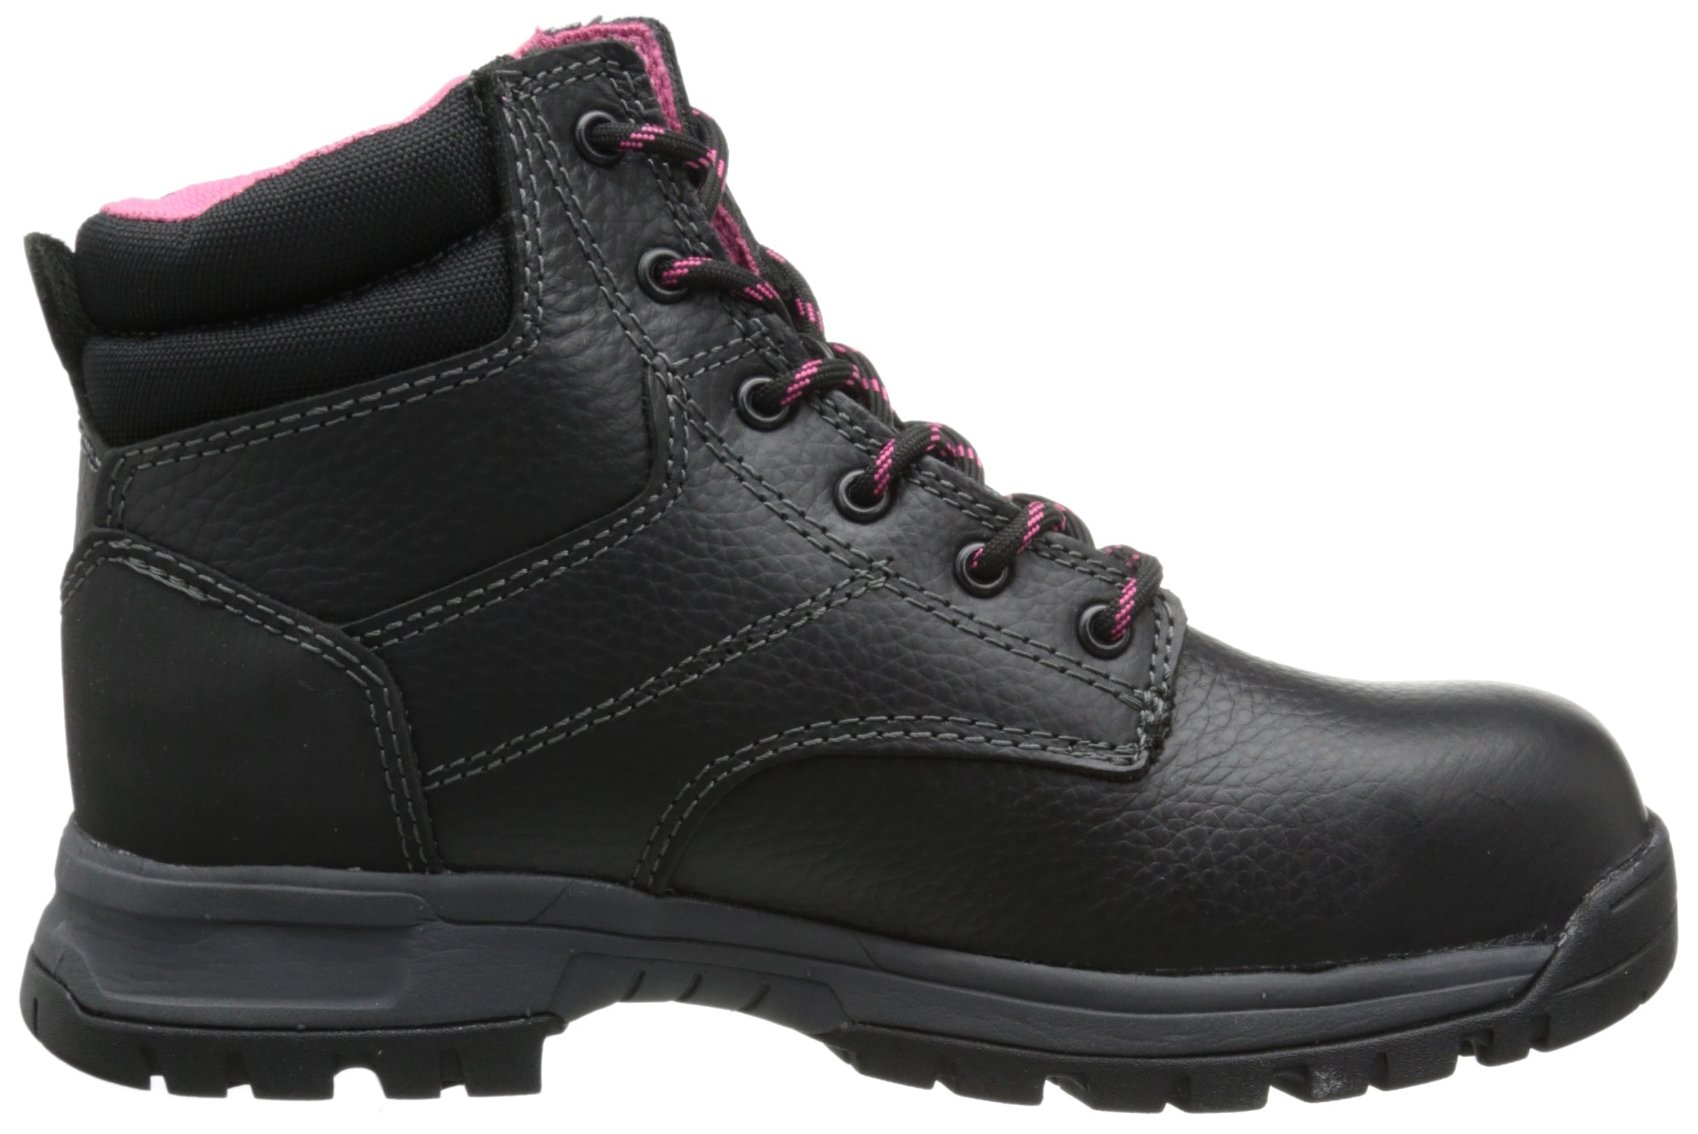 Wolverine Women's Piper Comp Safety Toe Boot,Black,9 W US by Wolverine (Image #6)